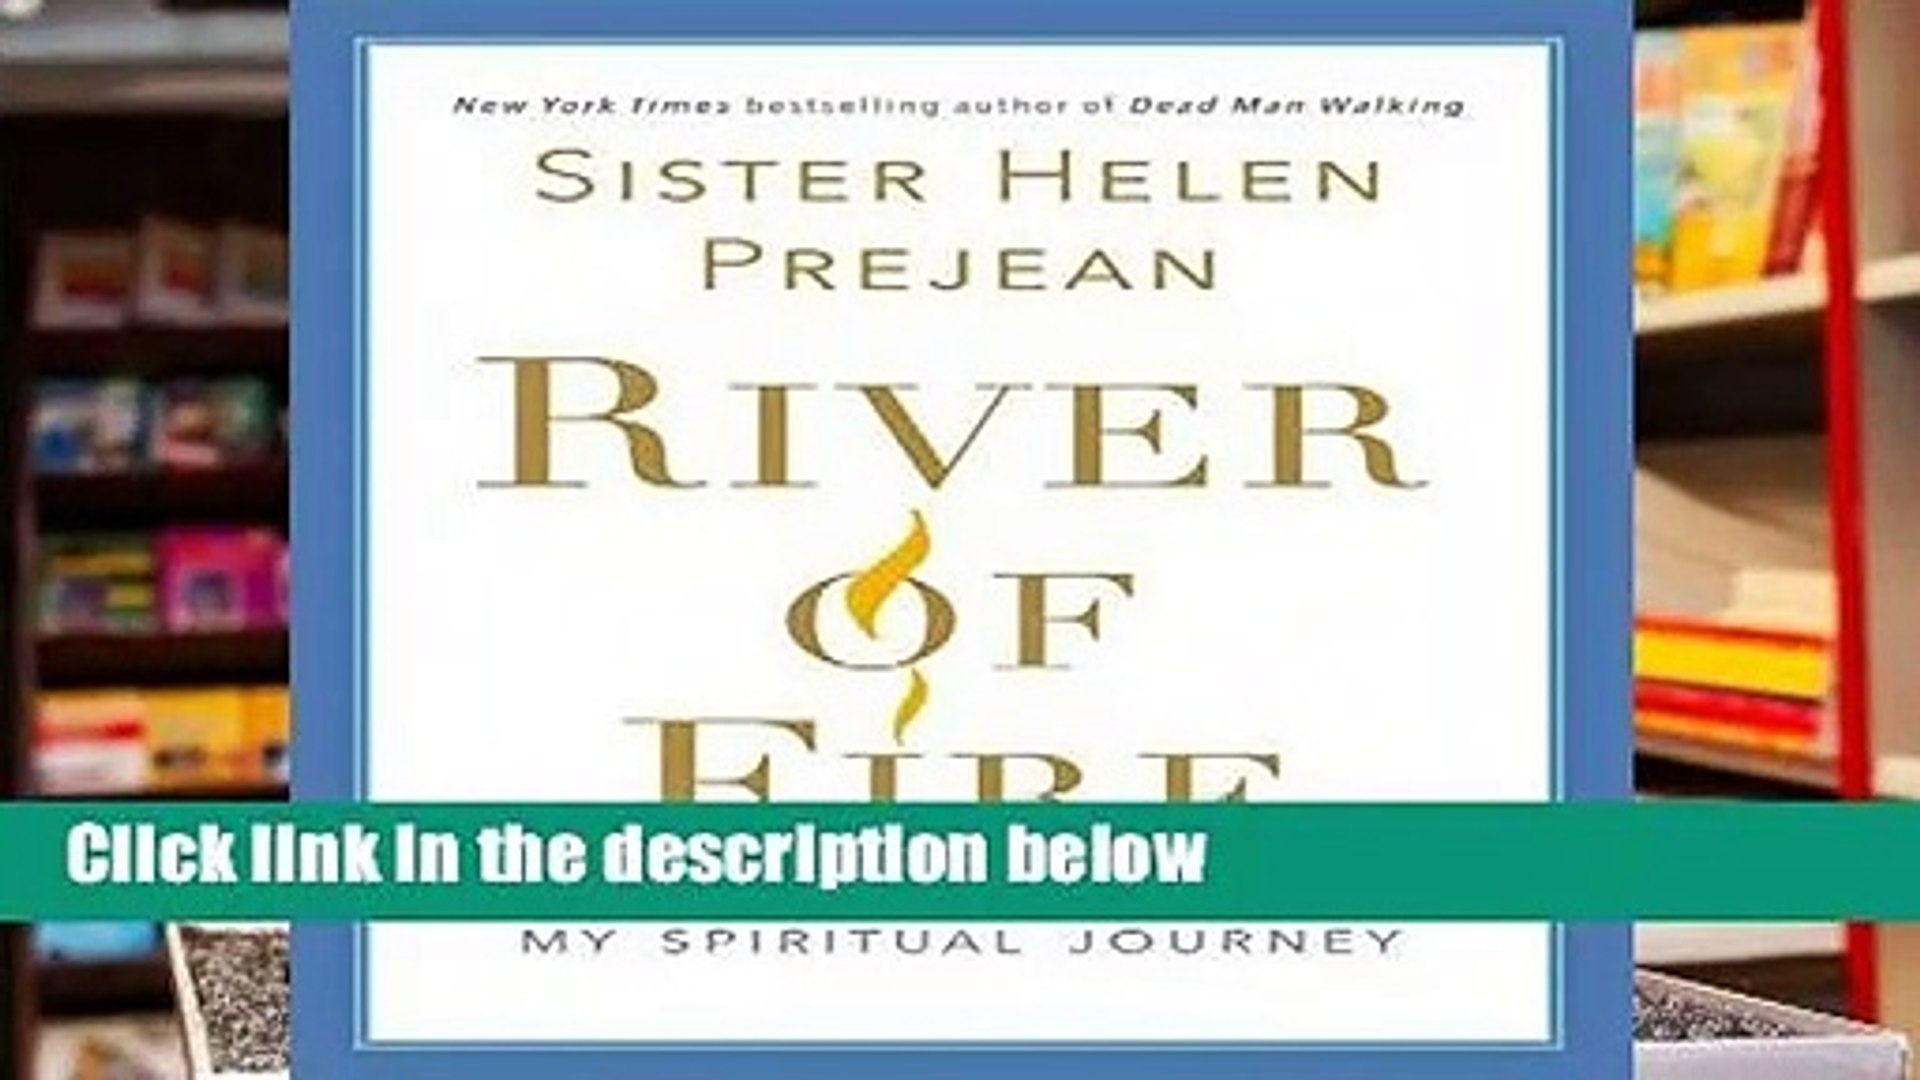 [FREE] River of Fire: My Spiritual Journey